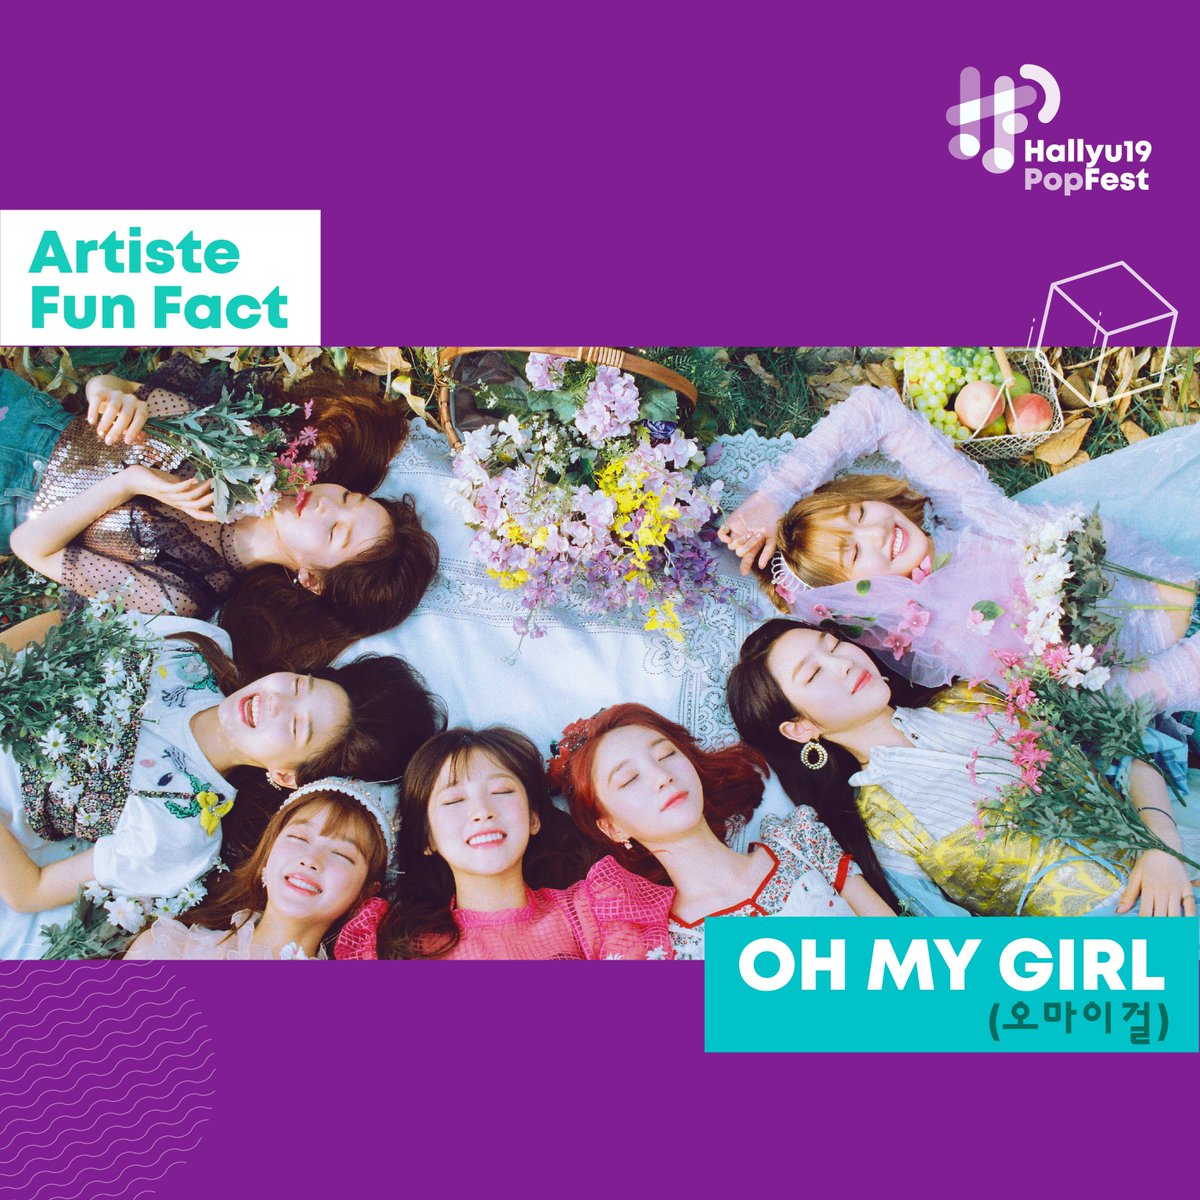 Happy 4th Anniversary OH MY GIRL! 🎉 Catch @WM_OHMYGIRL on 25 May at HallyuPopFest 2019! Miracles, have you gotten your tickets to catch them in Singapore? Haven't gotten your tickets yet? Get them now from: sportshub.com.sg/HallyuPopFest2… #오마이걸 #OHMYGIRL #HallyuPopFest2019